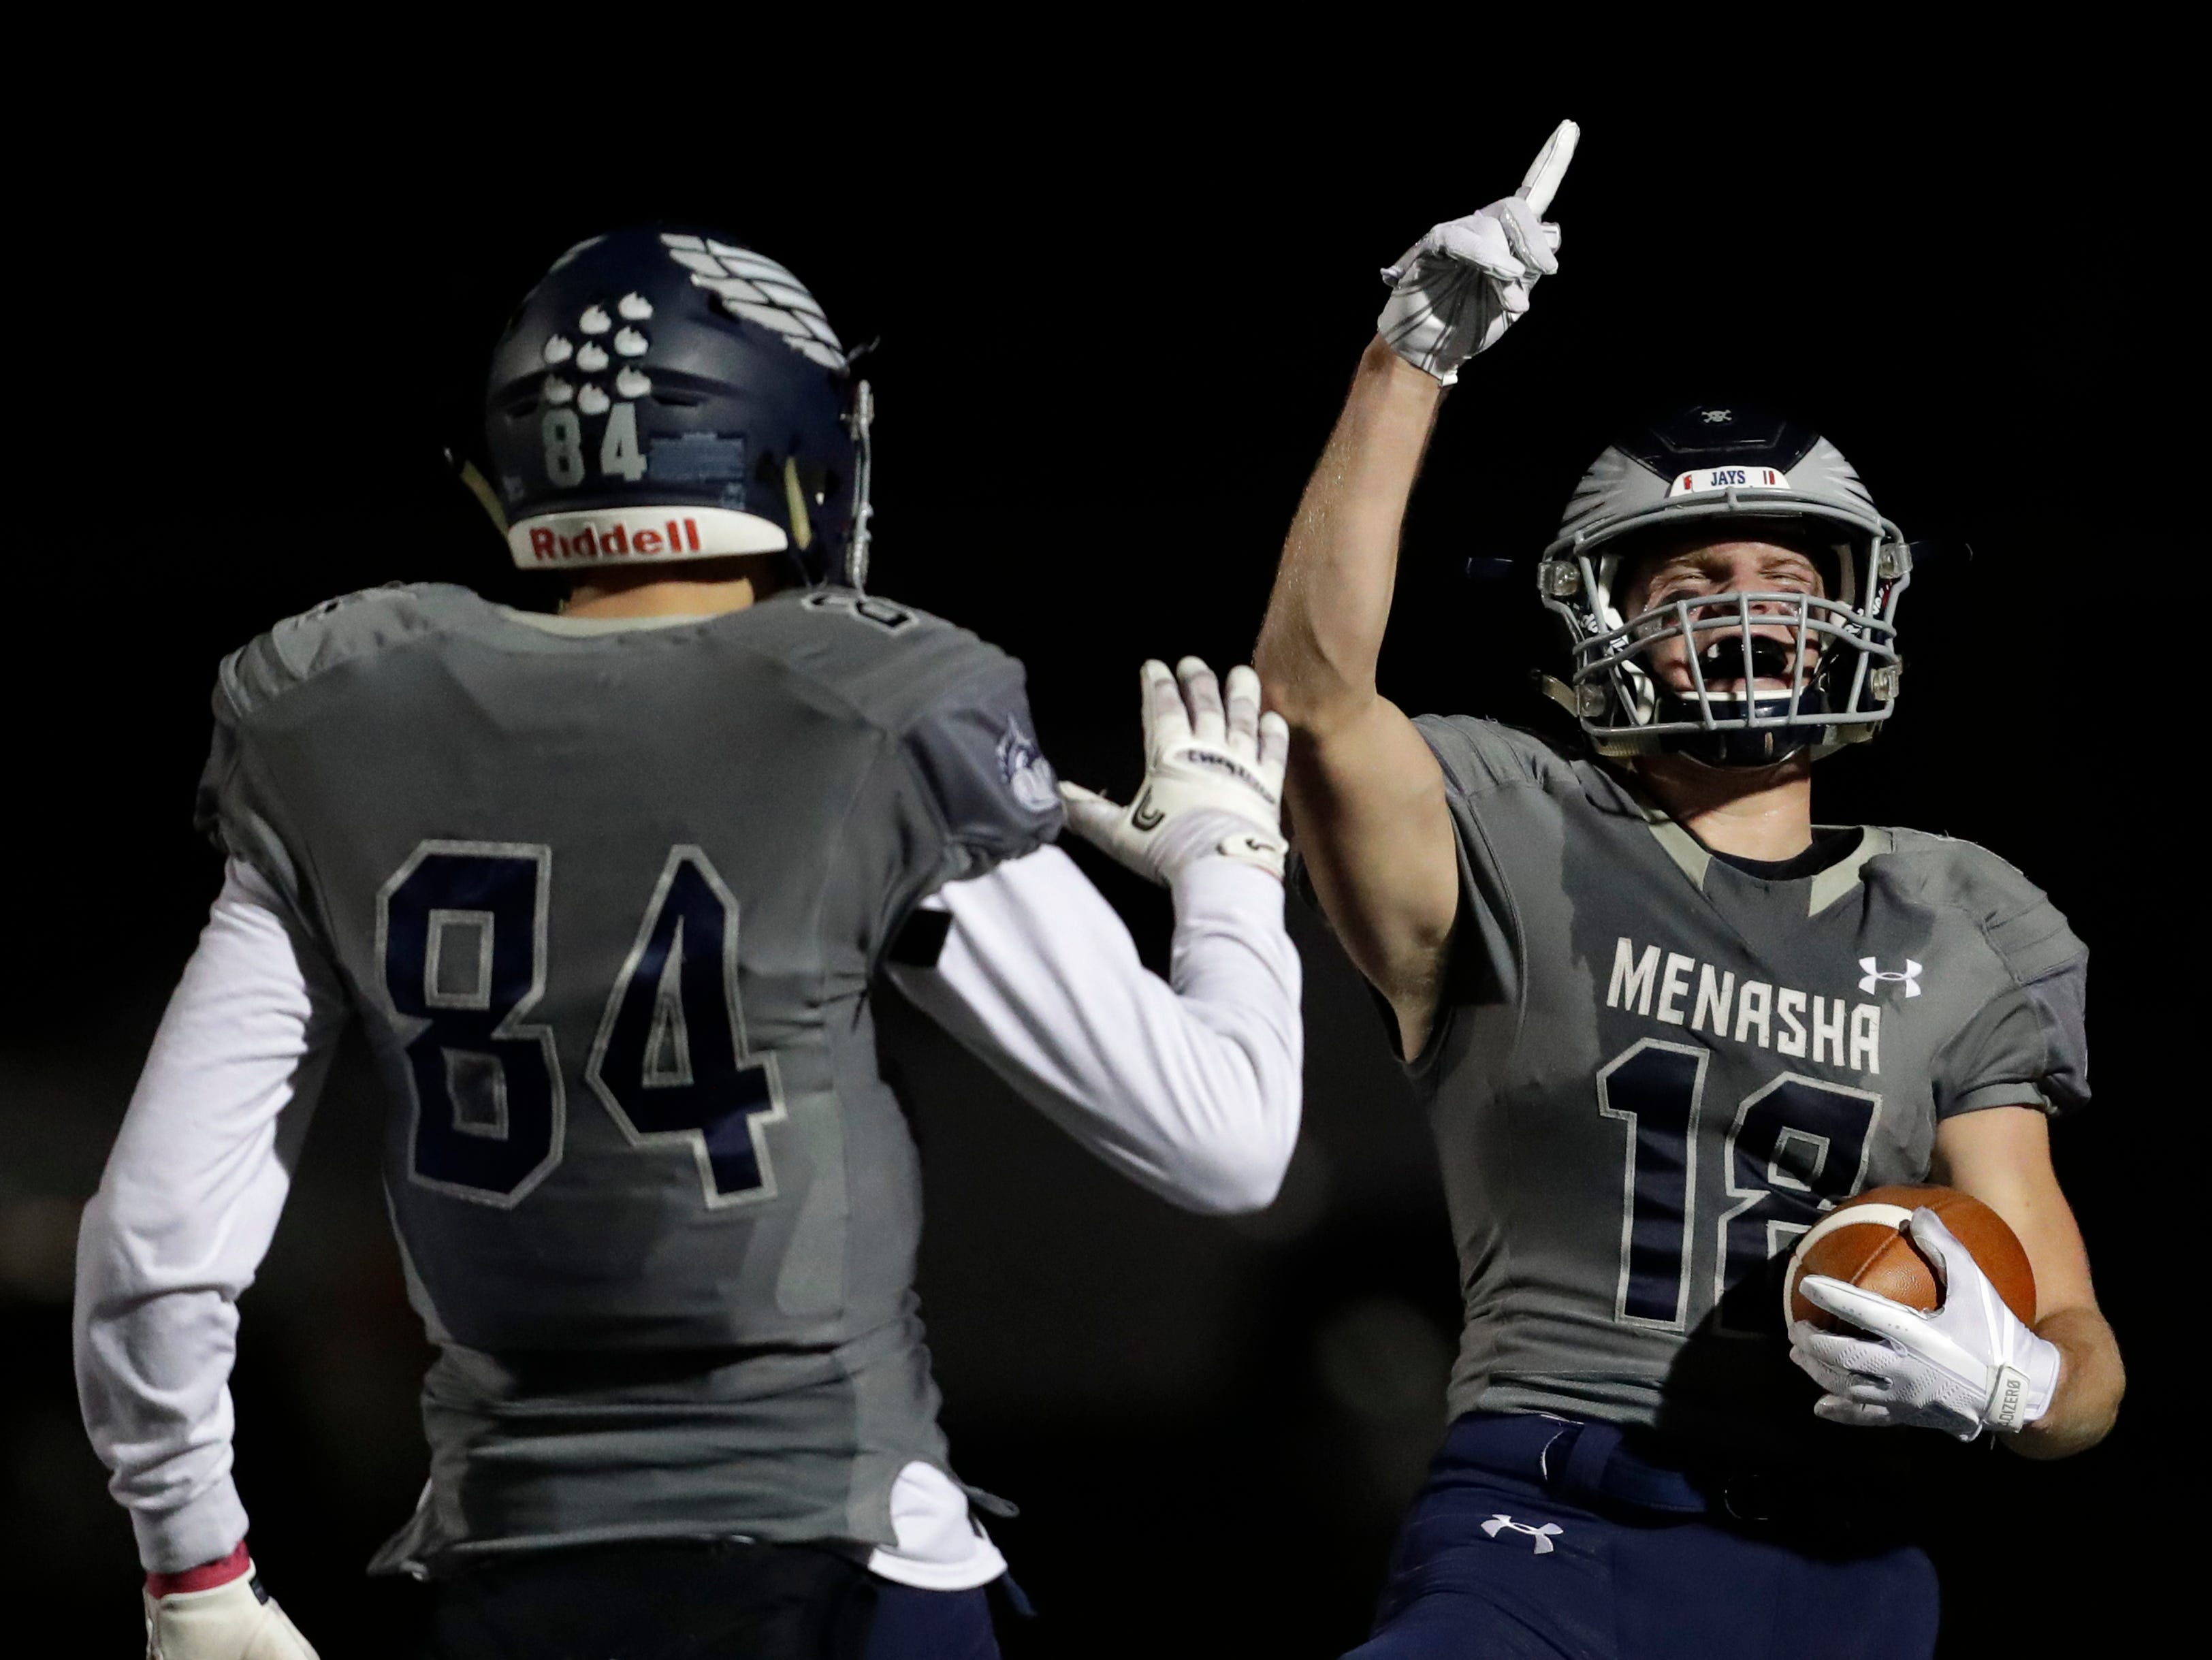 Menasha High School's Riley Zirpel (18) celebrates his 62-yard touchdown reception with teammate Ben Romnek (84) against Hortonville High School during their WIAA Division 2 football playoff game Friday, Oct. 19, 2018, at Calder Stadium in Menasha, Wis. 